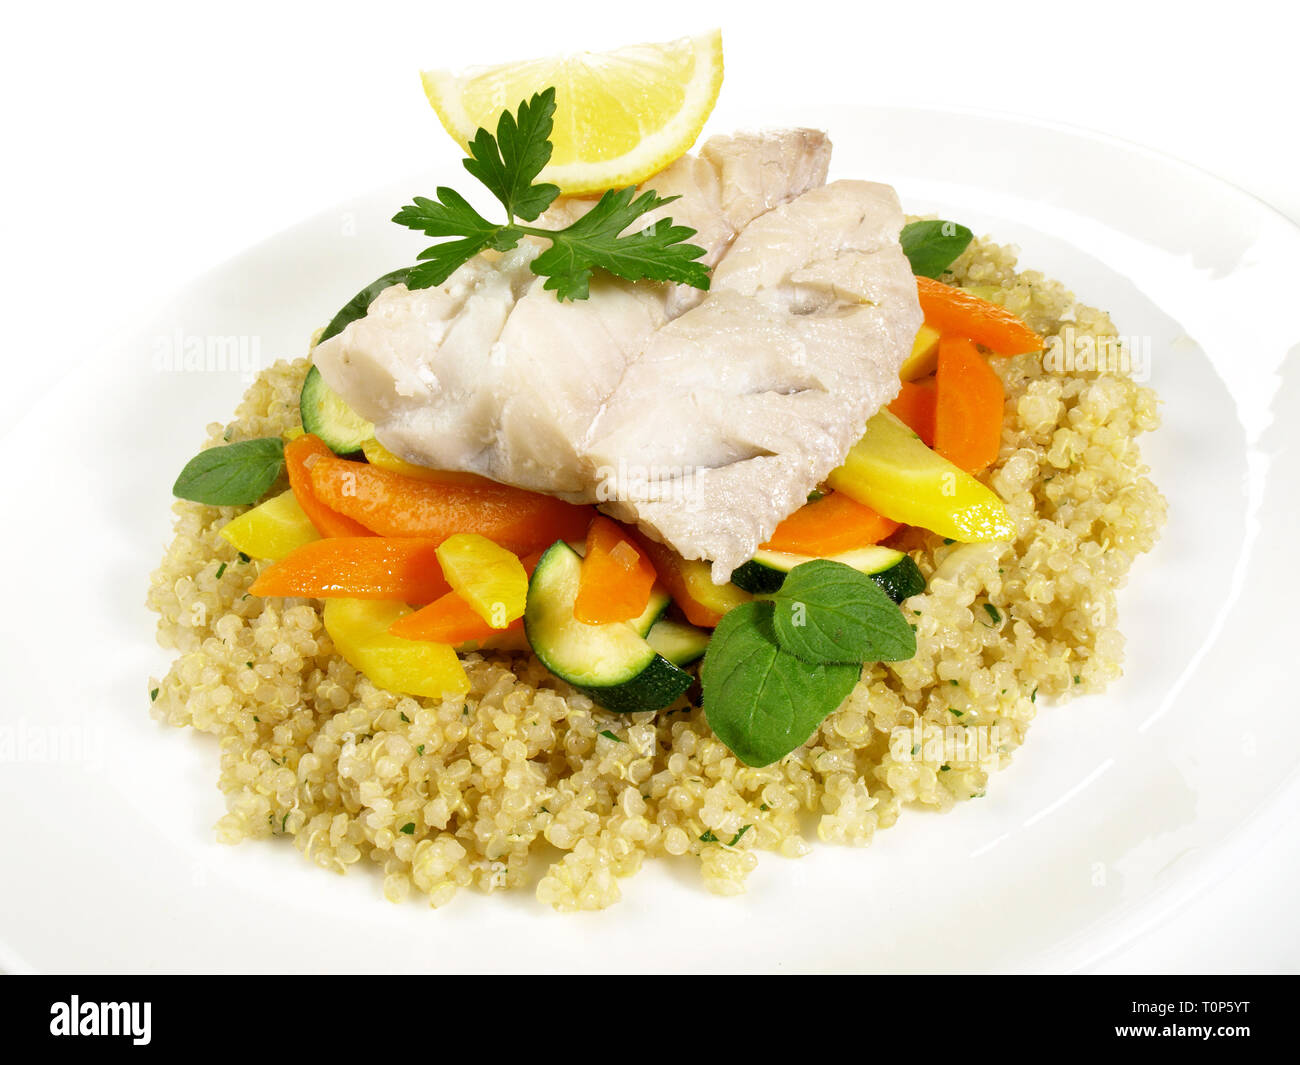 Cooked Pollack Fish with Quinoa - Stock Image